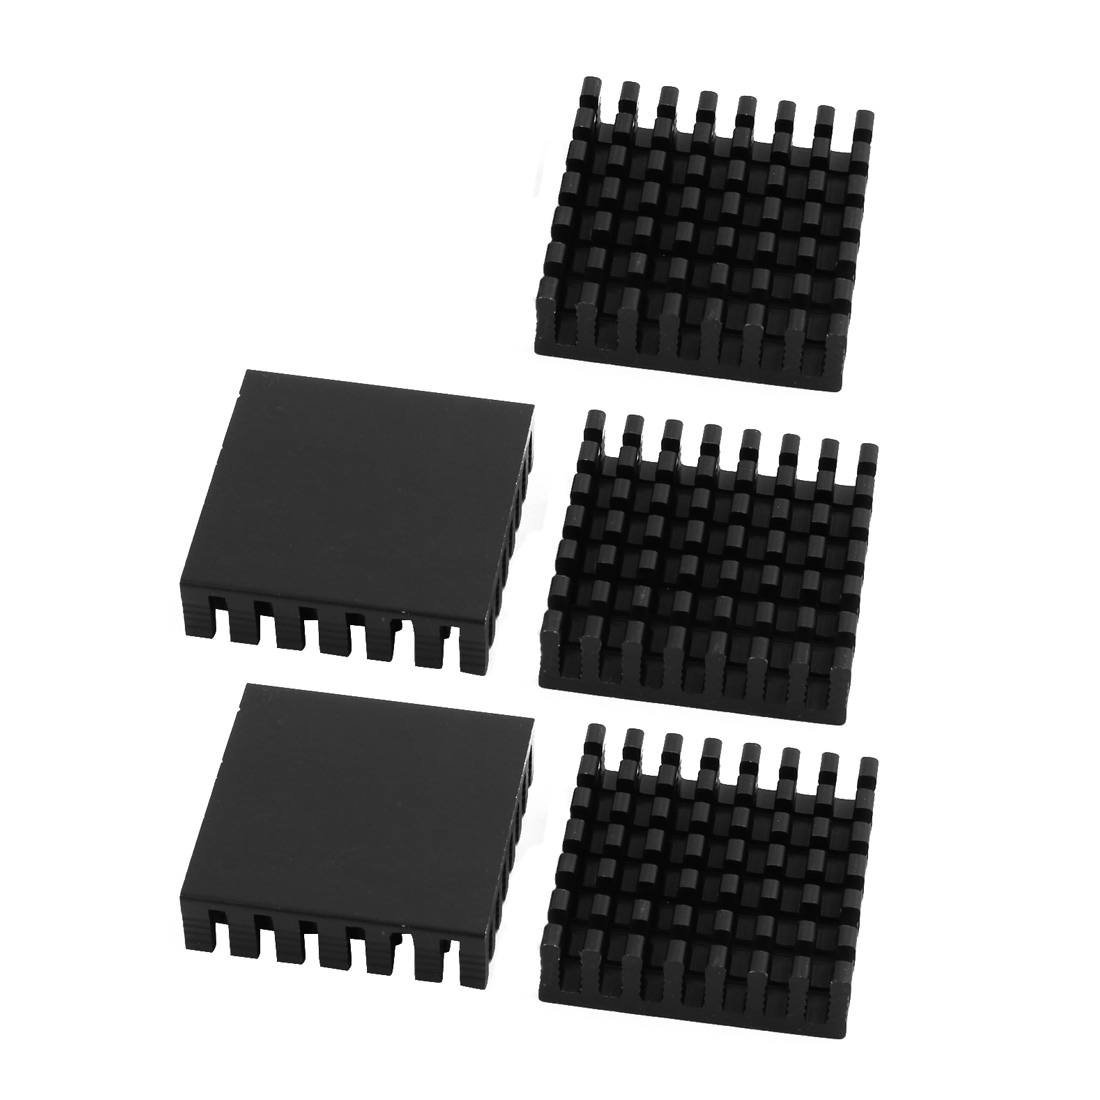 5Pcs 28mm x 28mm x 8mm Aluminum Heatsink Heat Diffuse Cooling Fin Black